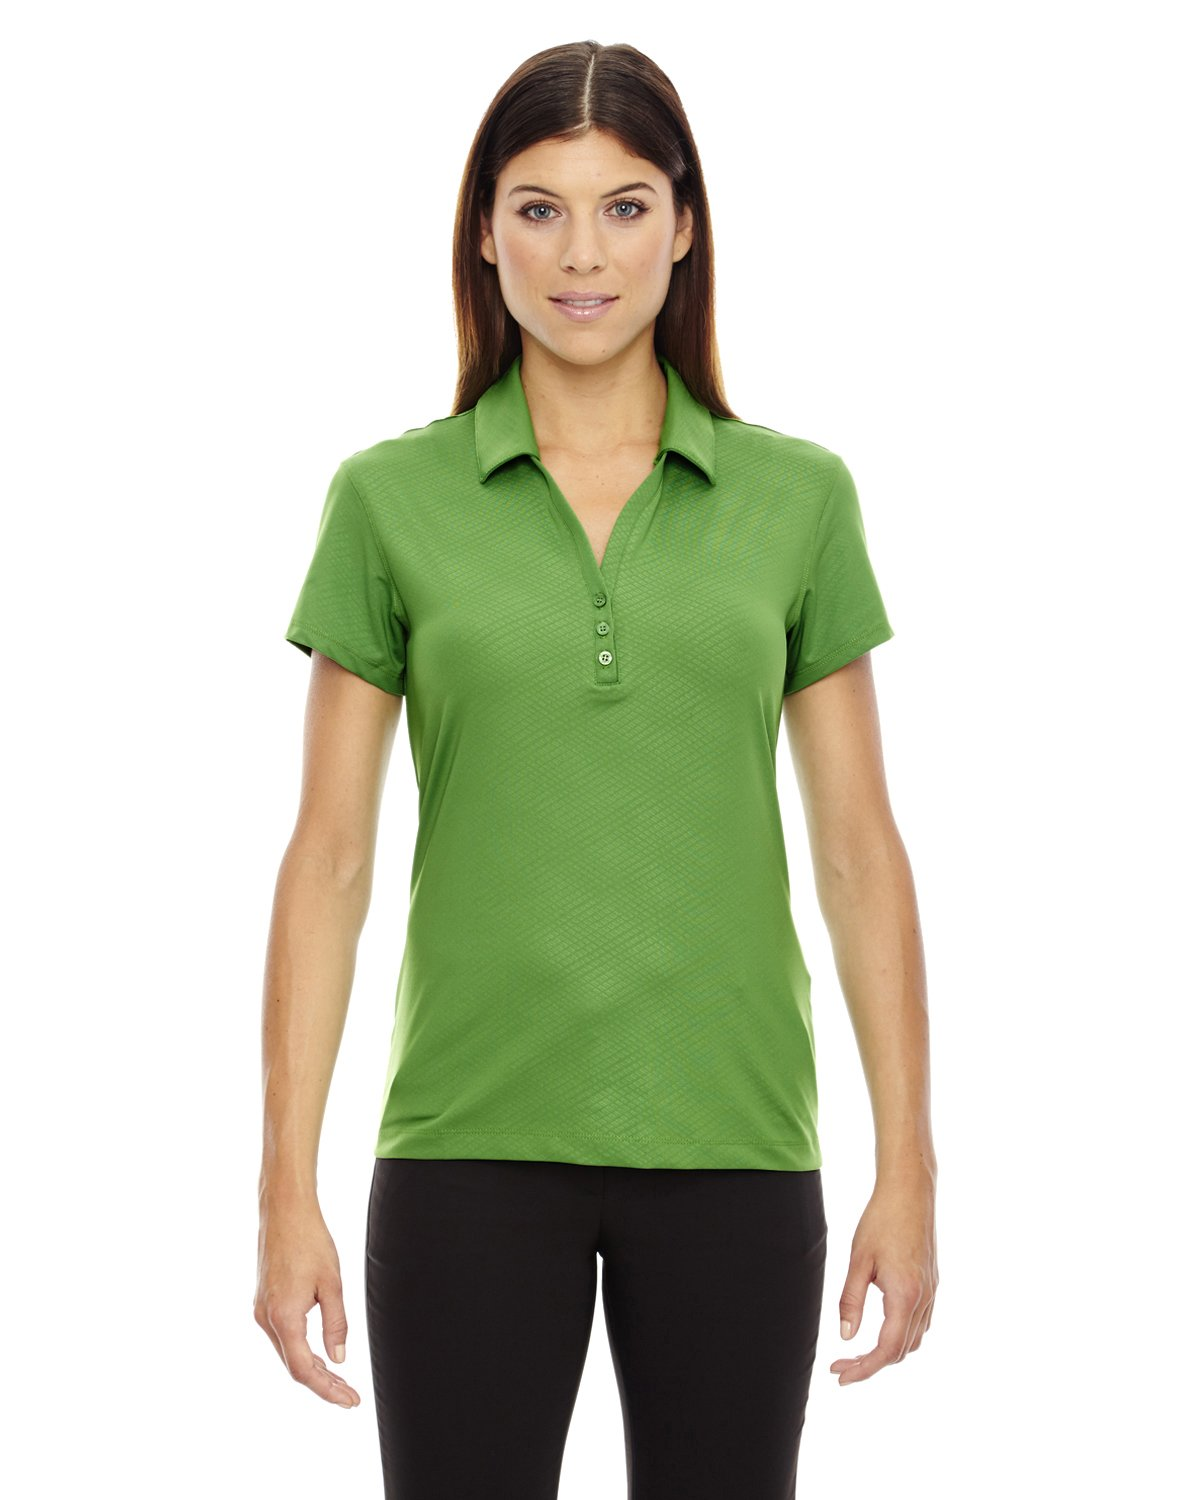 Ash City Ladies Maze Stretch Polo (X-Large, Valley Green) by Ash City Apparel